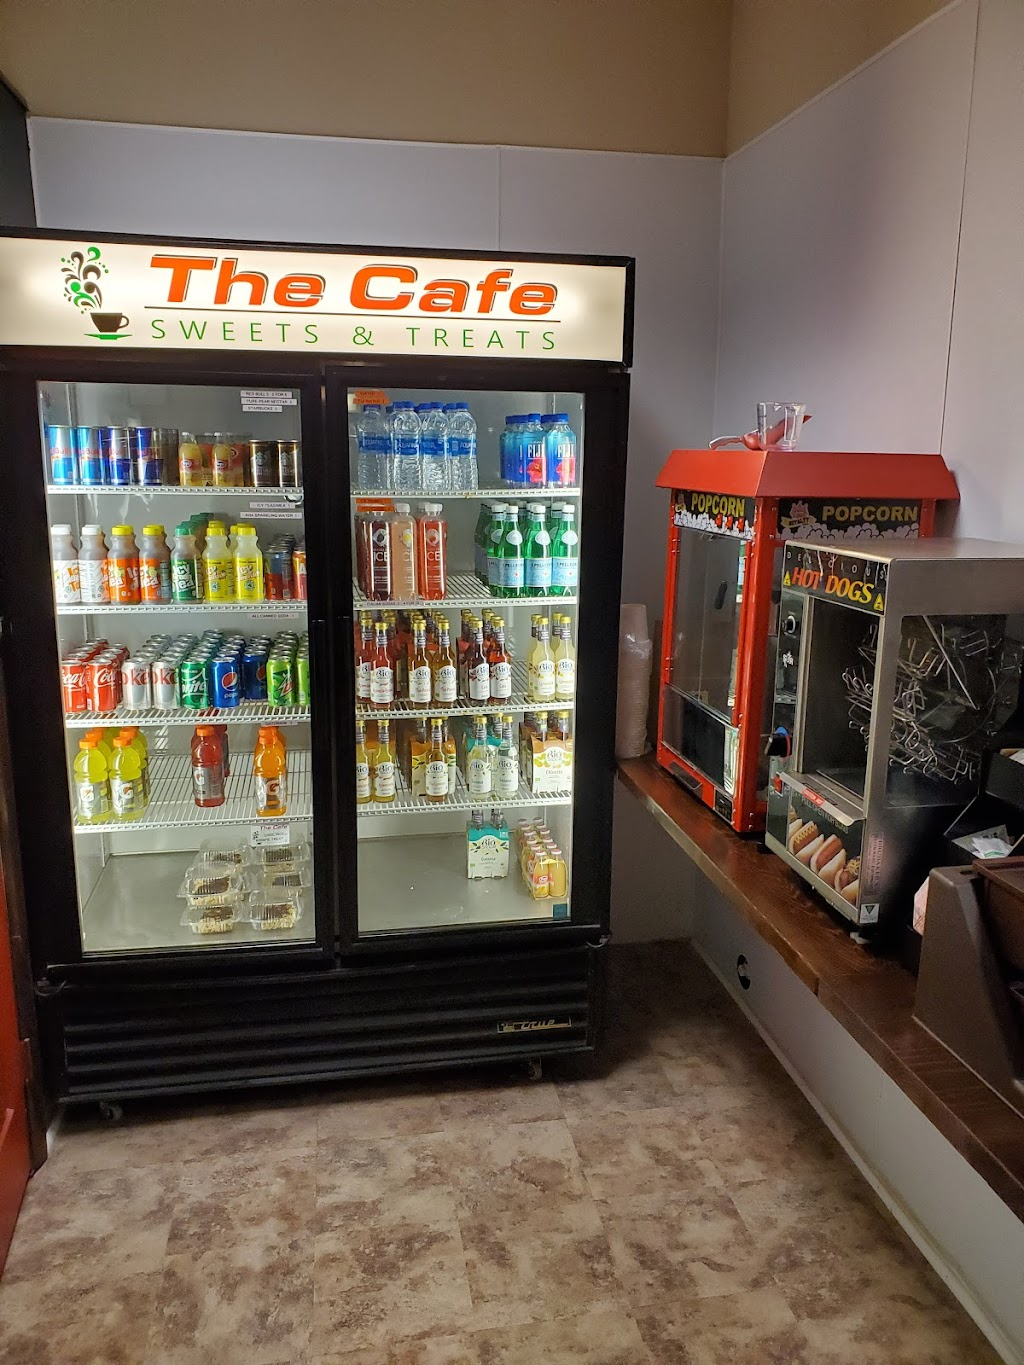 The Cafe   cafe   3609 Pottsville Pike, Reading, PA 19605, USA   6107433454 OR +1 610-743-3454